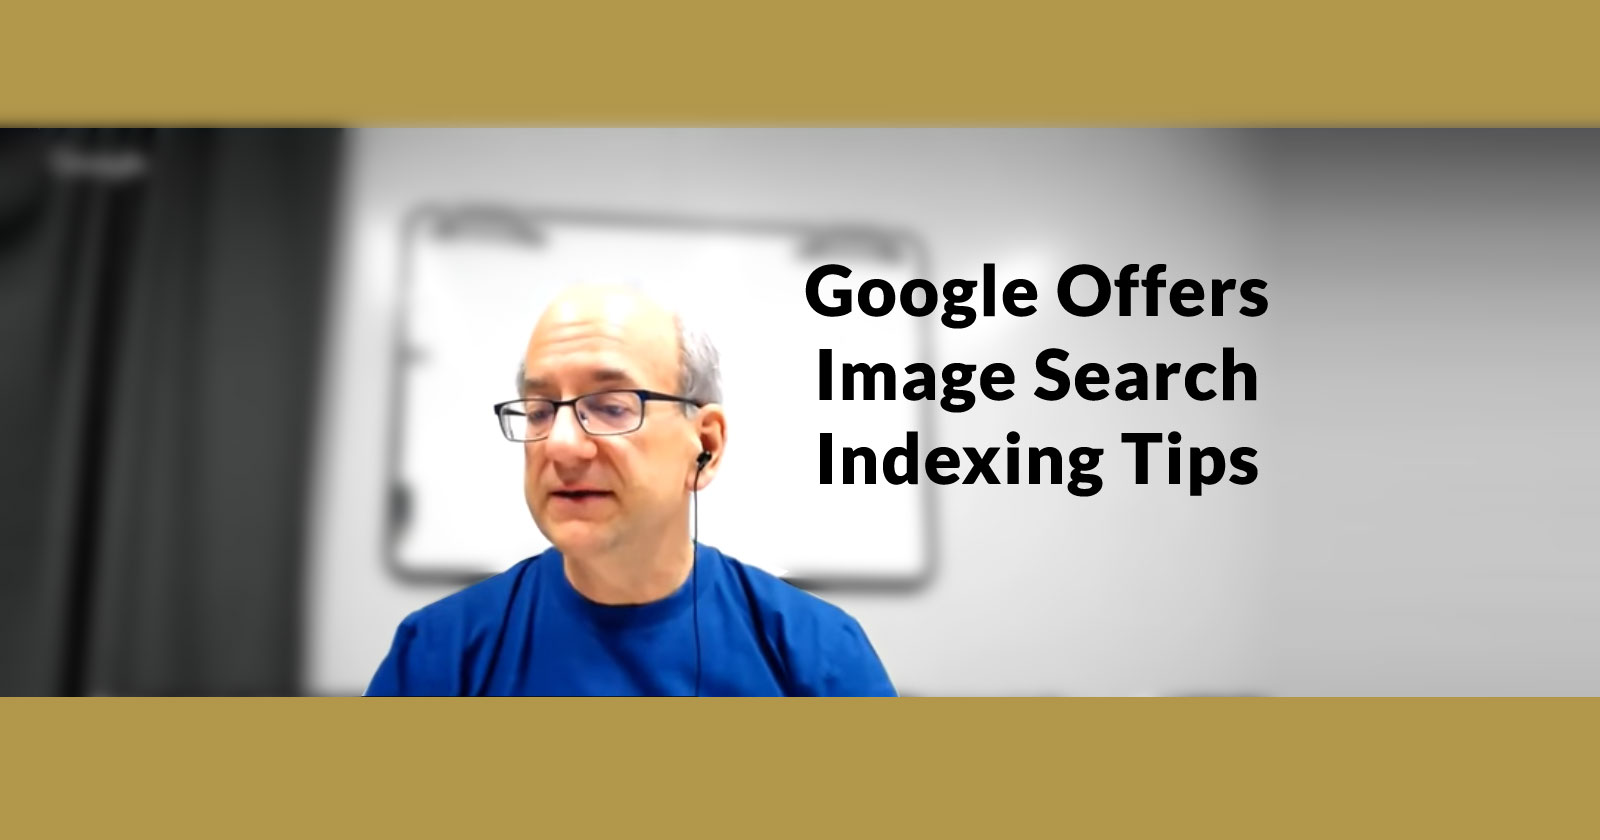 https://www.searchenginejournal.com/google-image-search/231735/